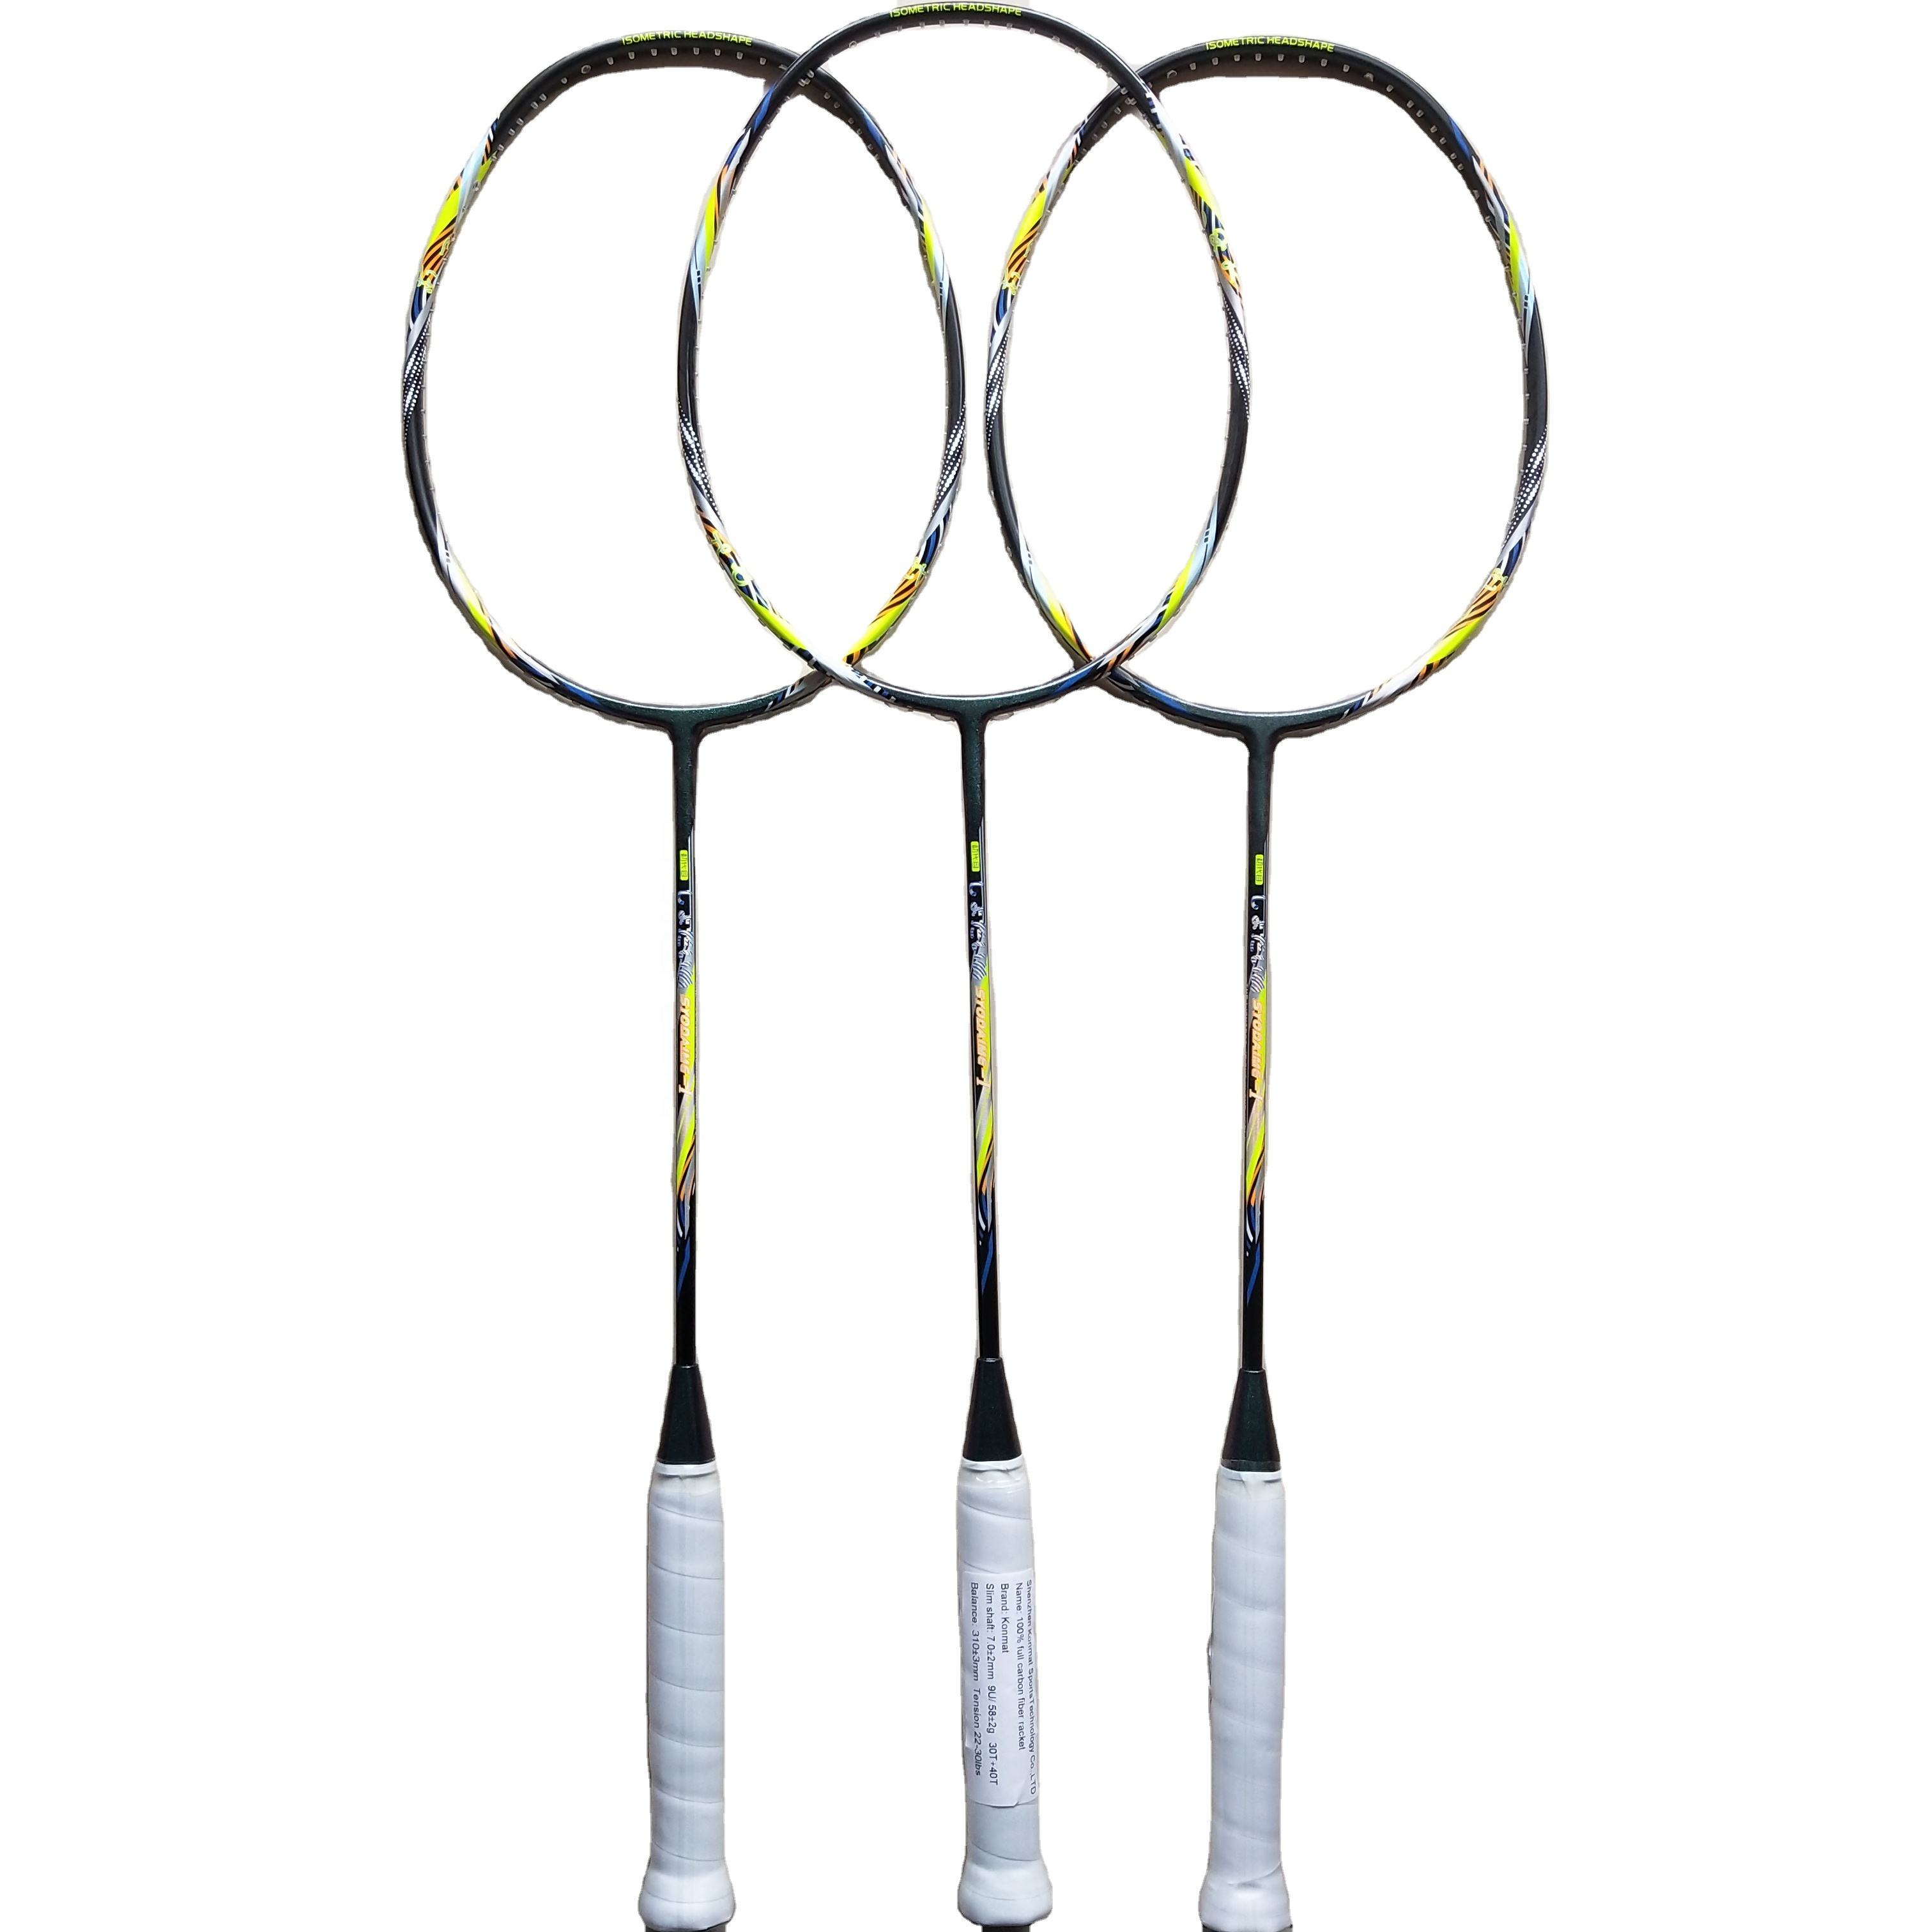 9u <span class=keywords><strong>Badminton</strong></span> Rackets 30 Lbs Spanning Graphite-Fiber 58G <span class=keywords><strong>Badminton</strong></span> <span class=keywords><strong>Racket</strong></span> Zonder Snaren